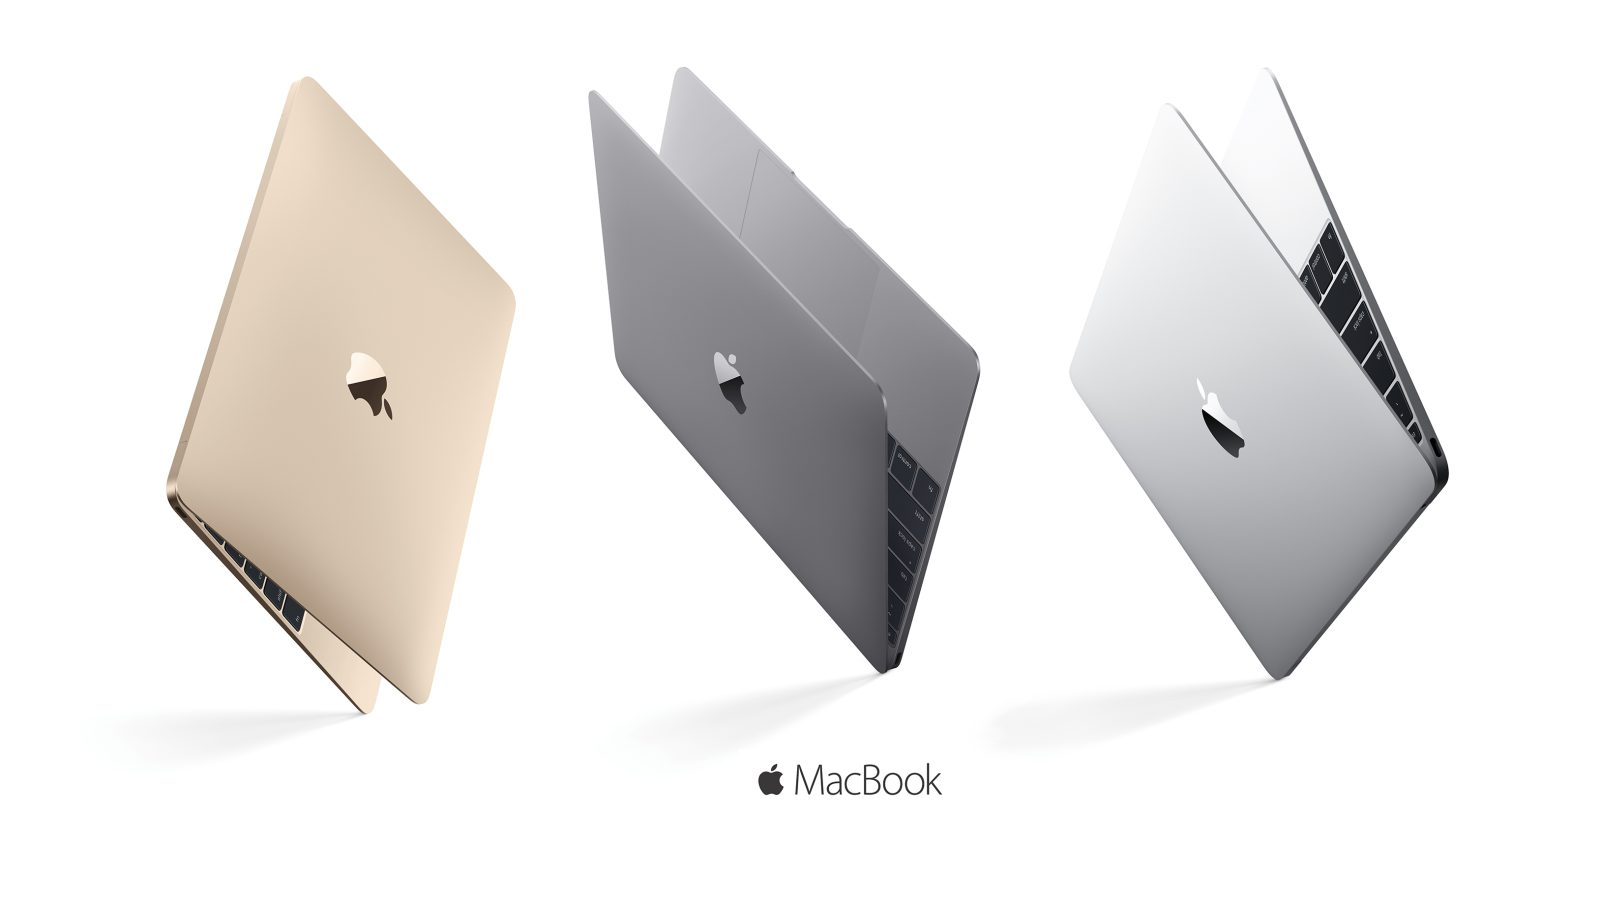 macbook-12-inch-retina-11